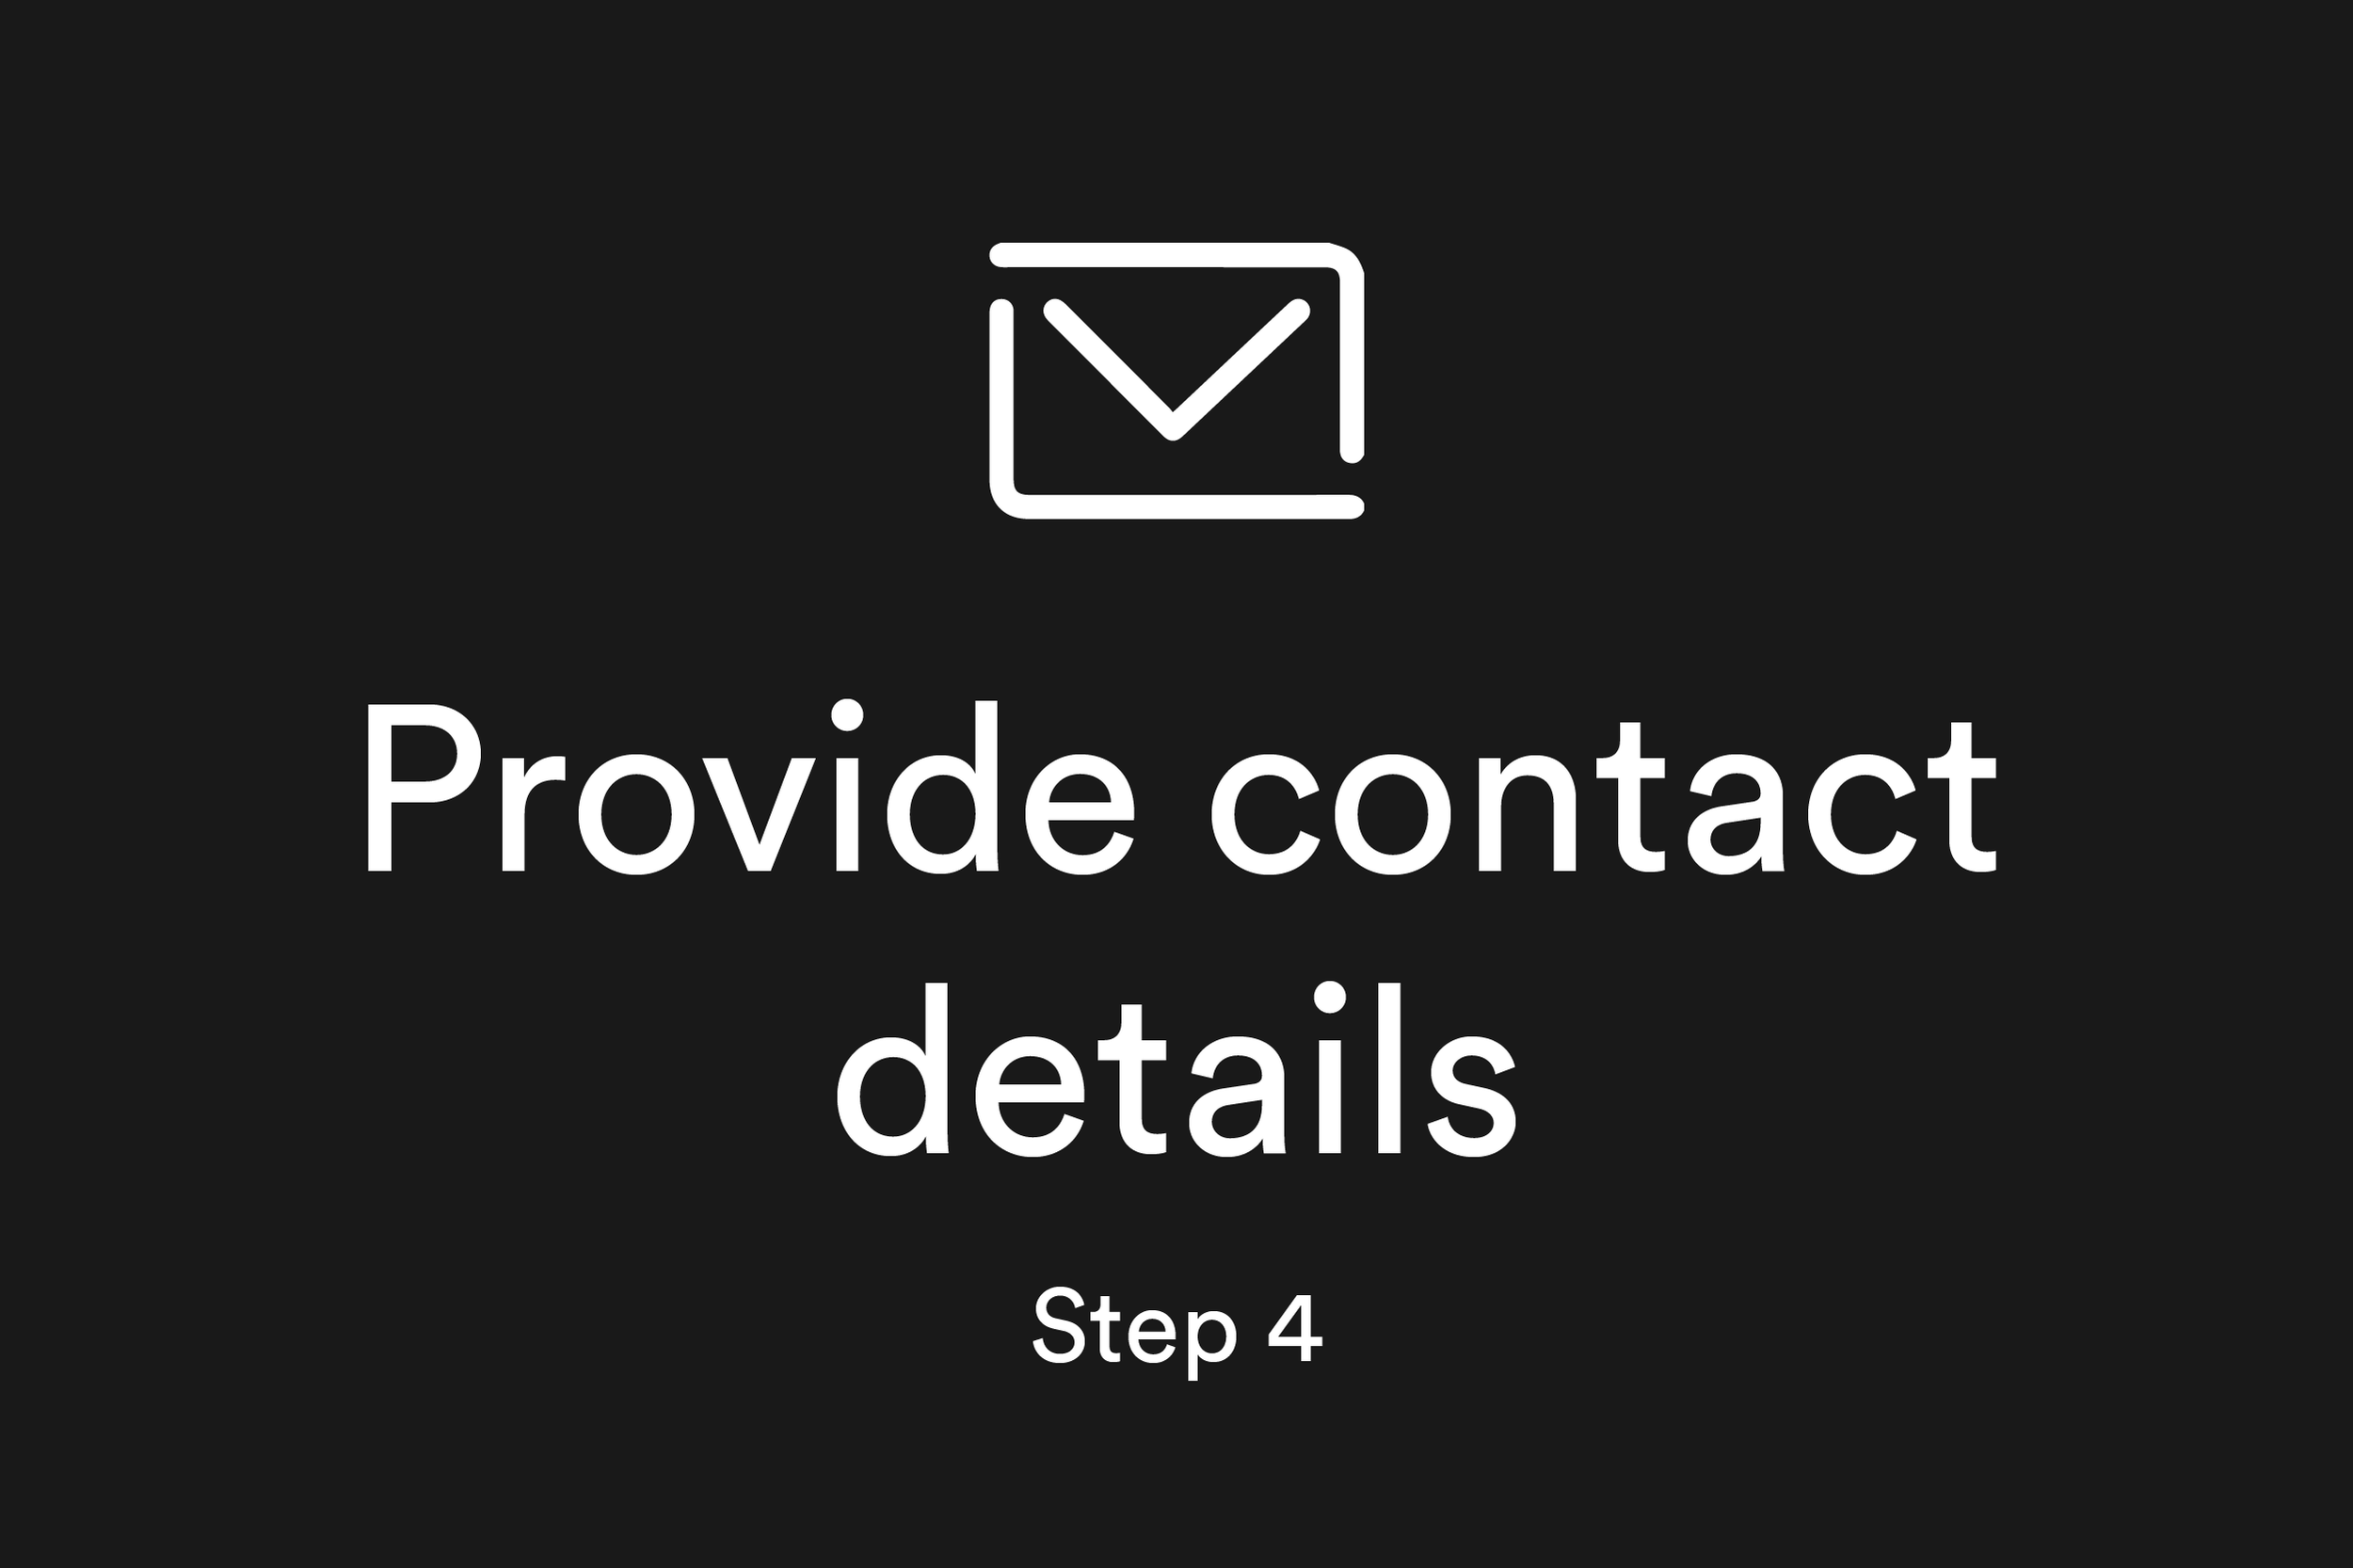 Provide contact details (Step 4)